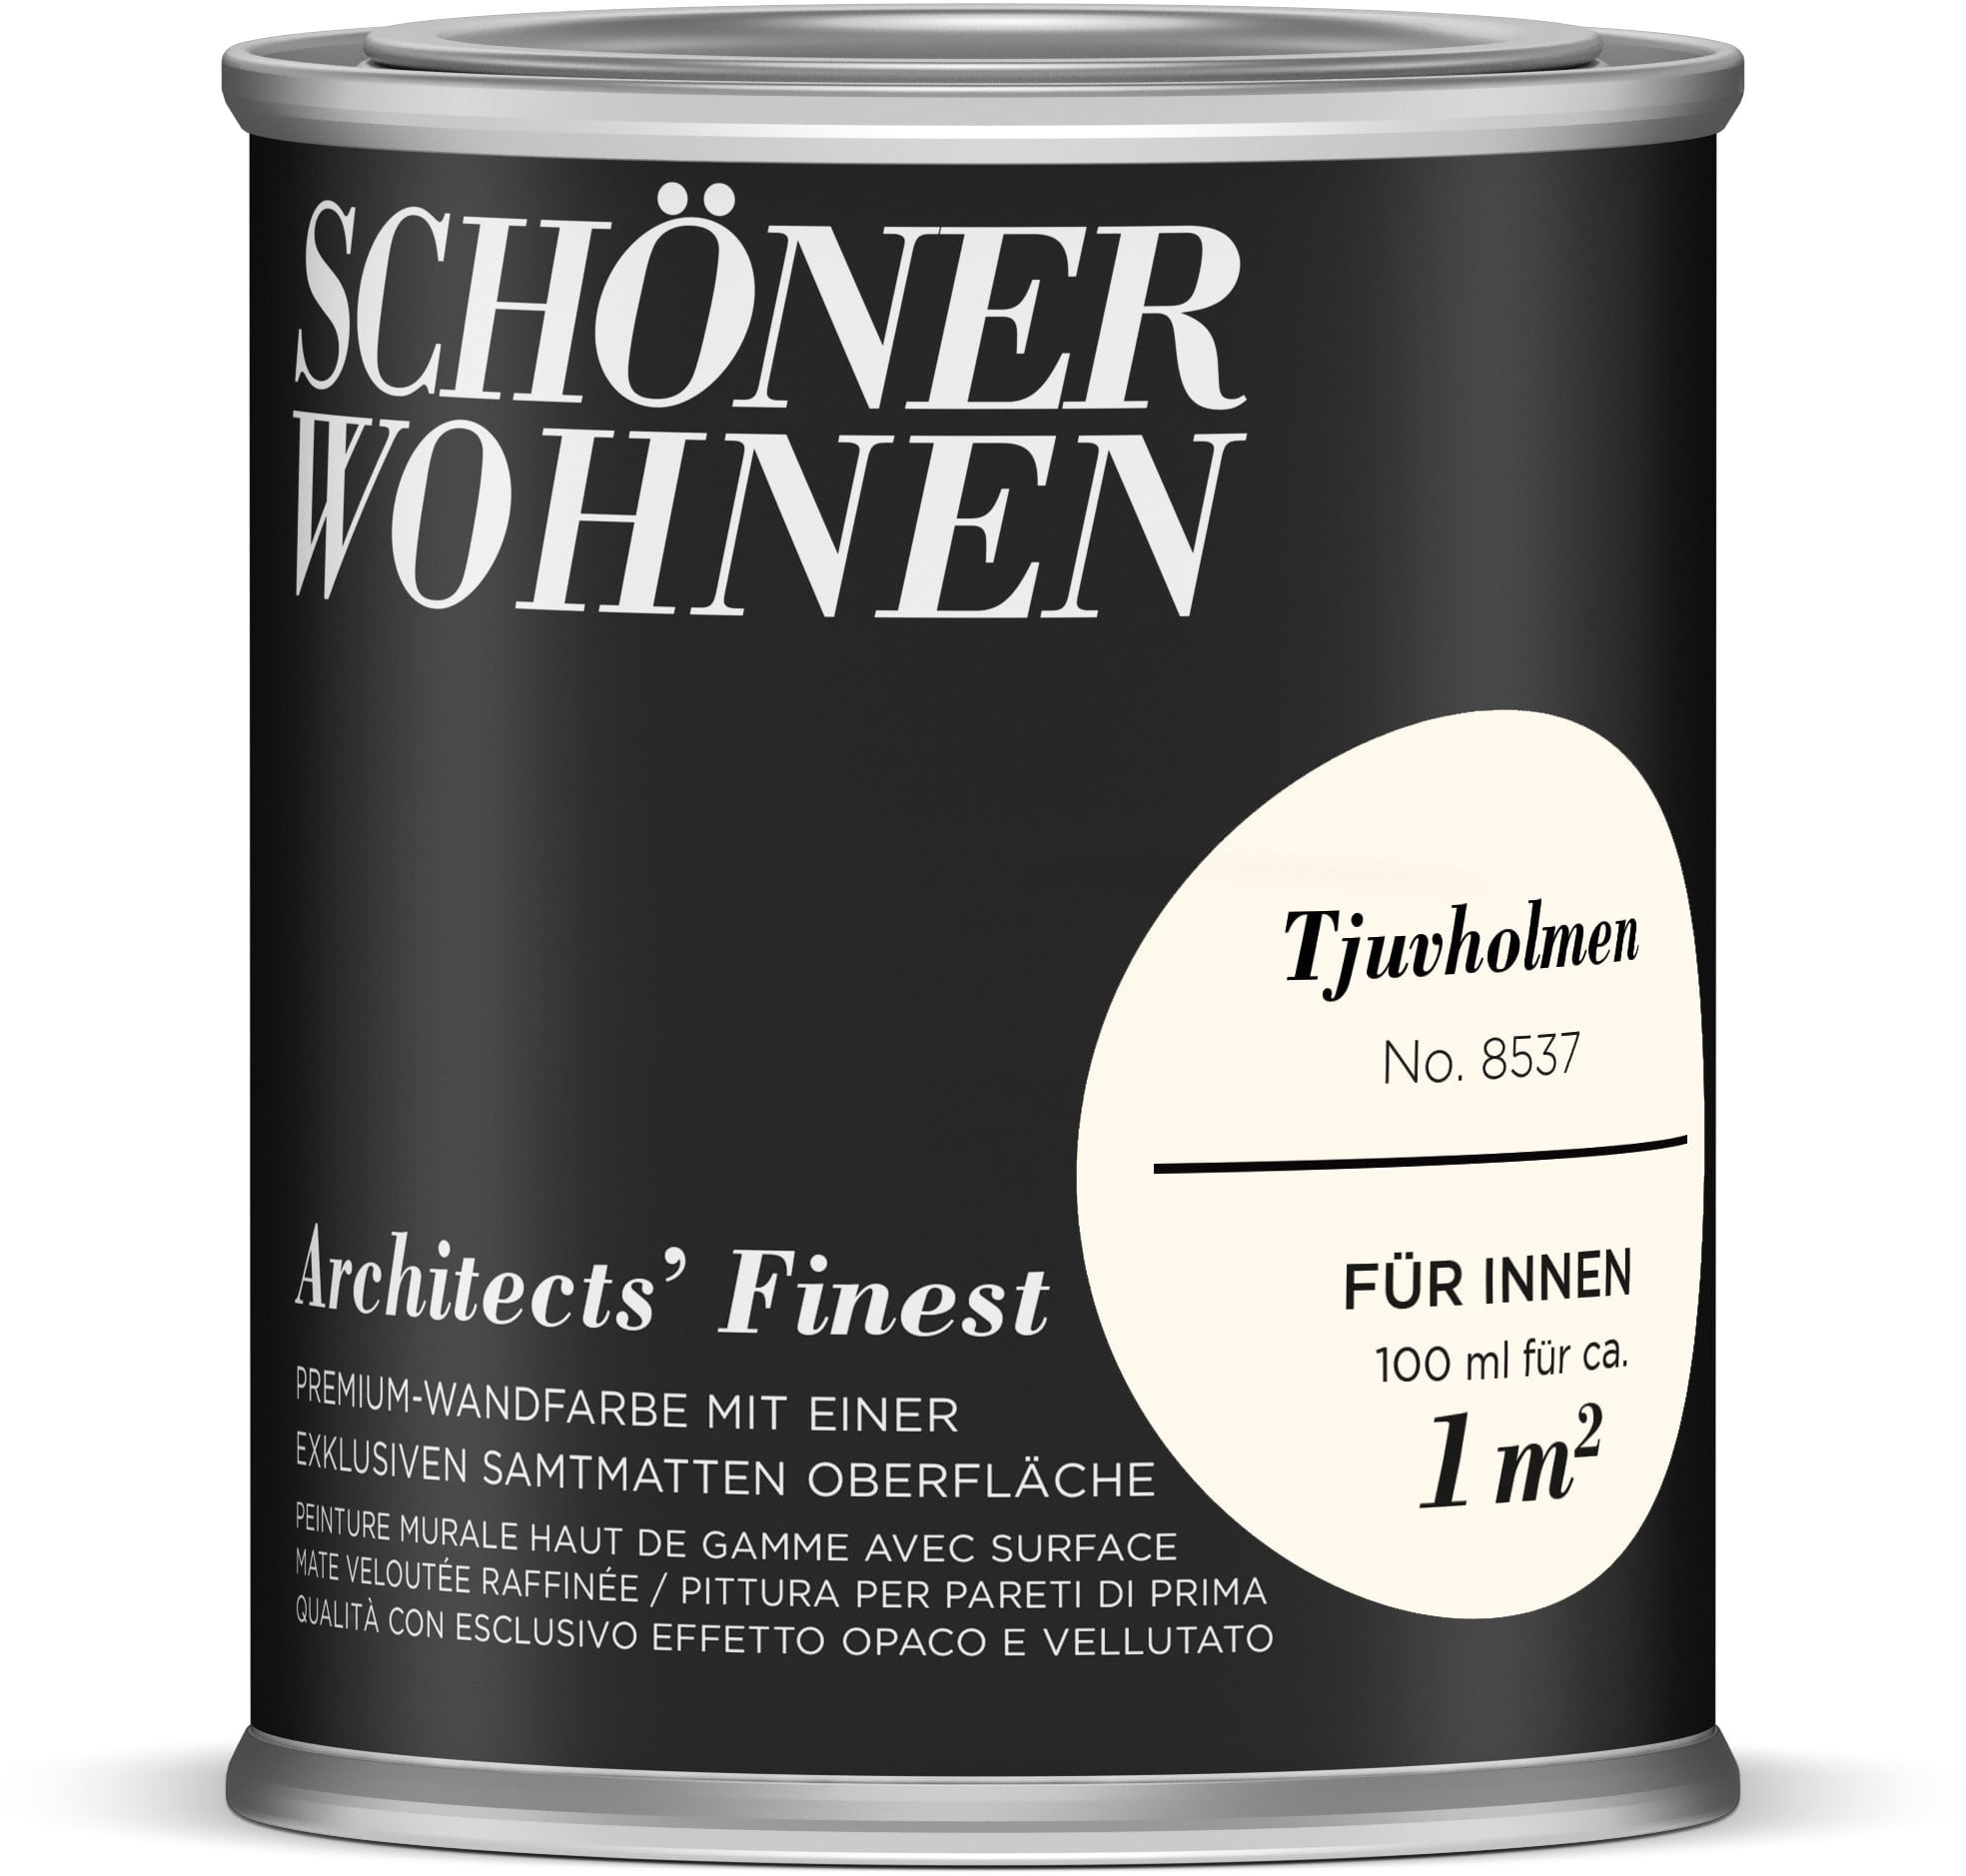 sch ner wohnen architects 39 finest 100 ml tjuvholmen migros. Black Bedroom Furniture Sets. Home Design Ideas